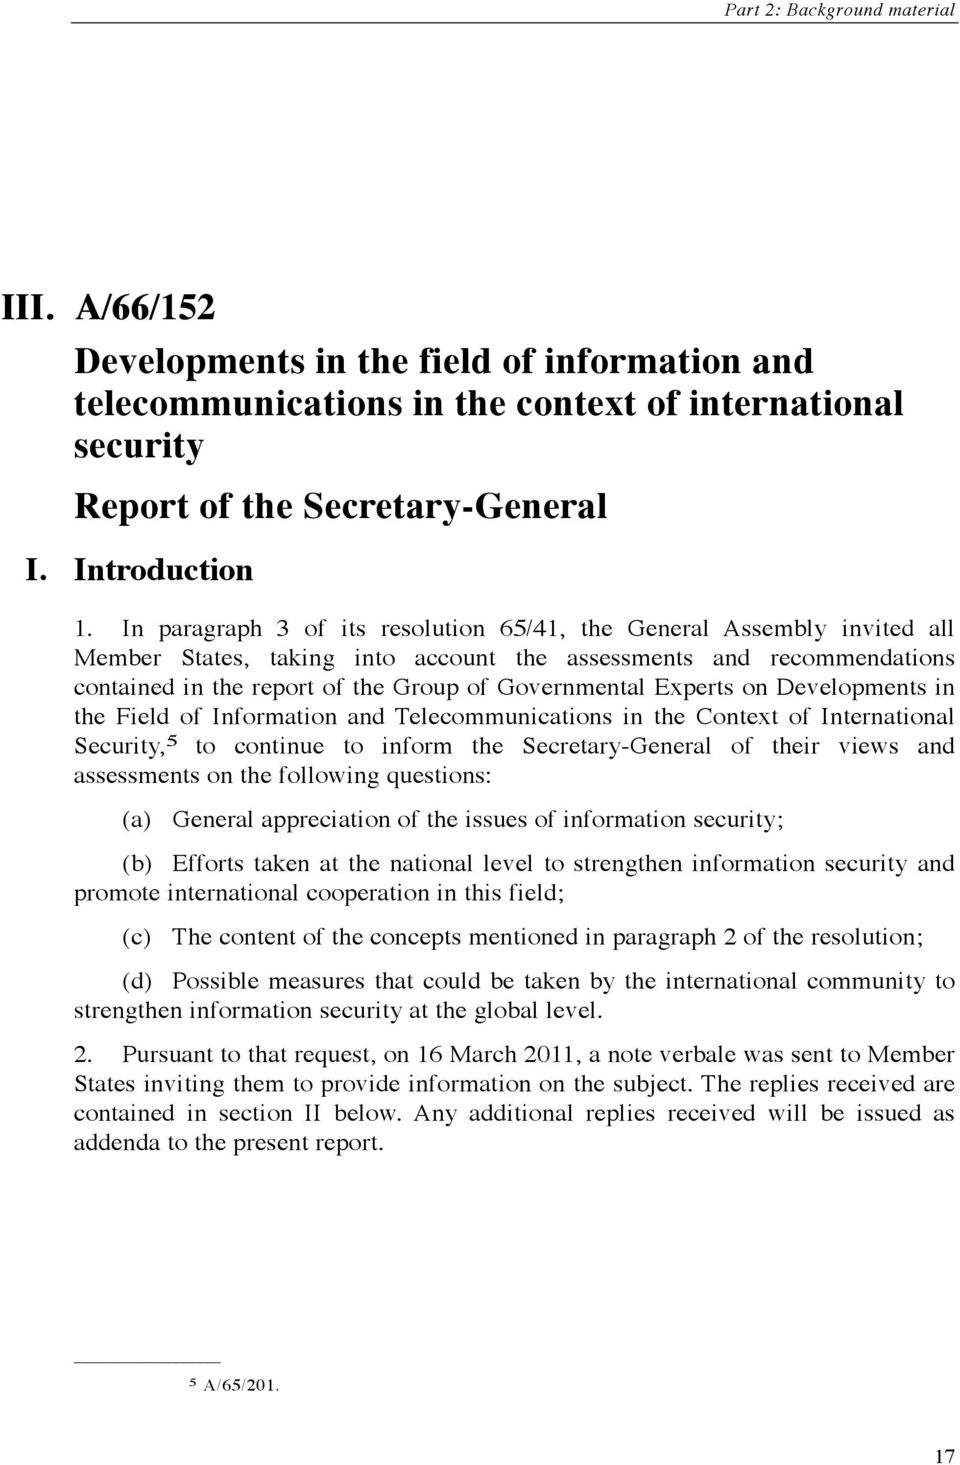 Experts on Developments in the Field of Information and Telecommunications in the Context of International Security, 5 to continue to inform the Secretary-General of their views and assessments on